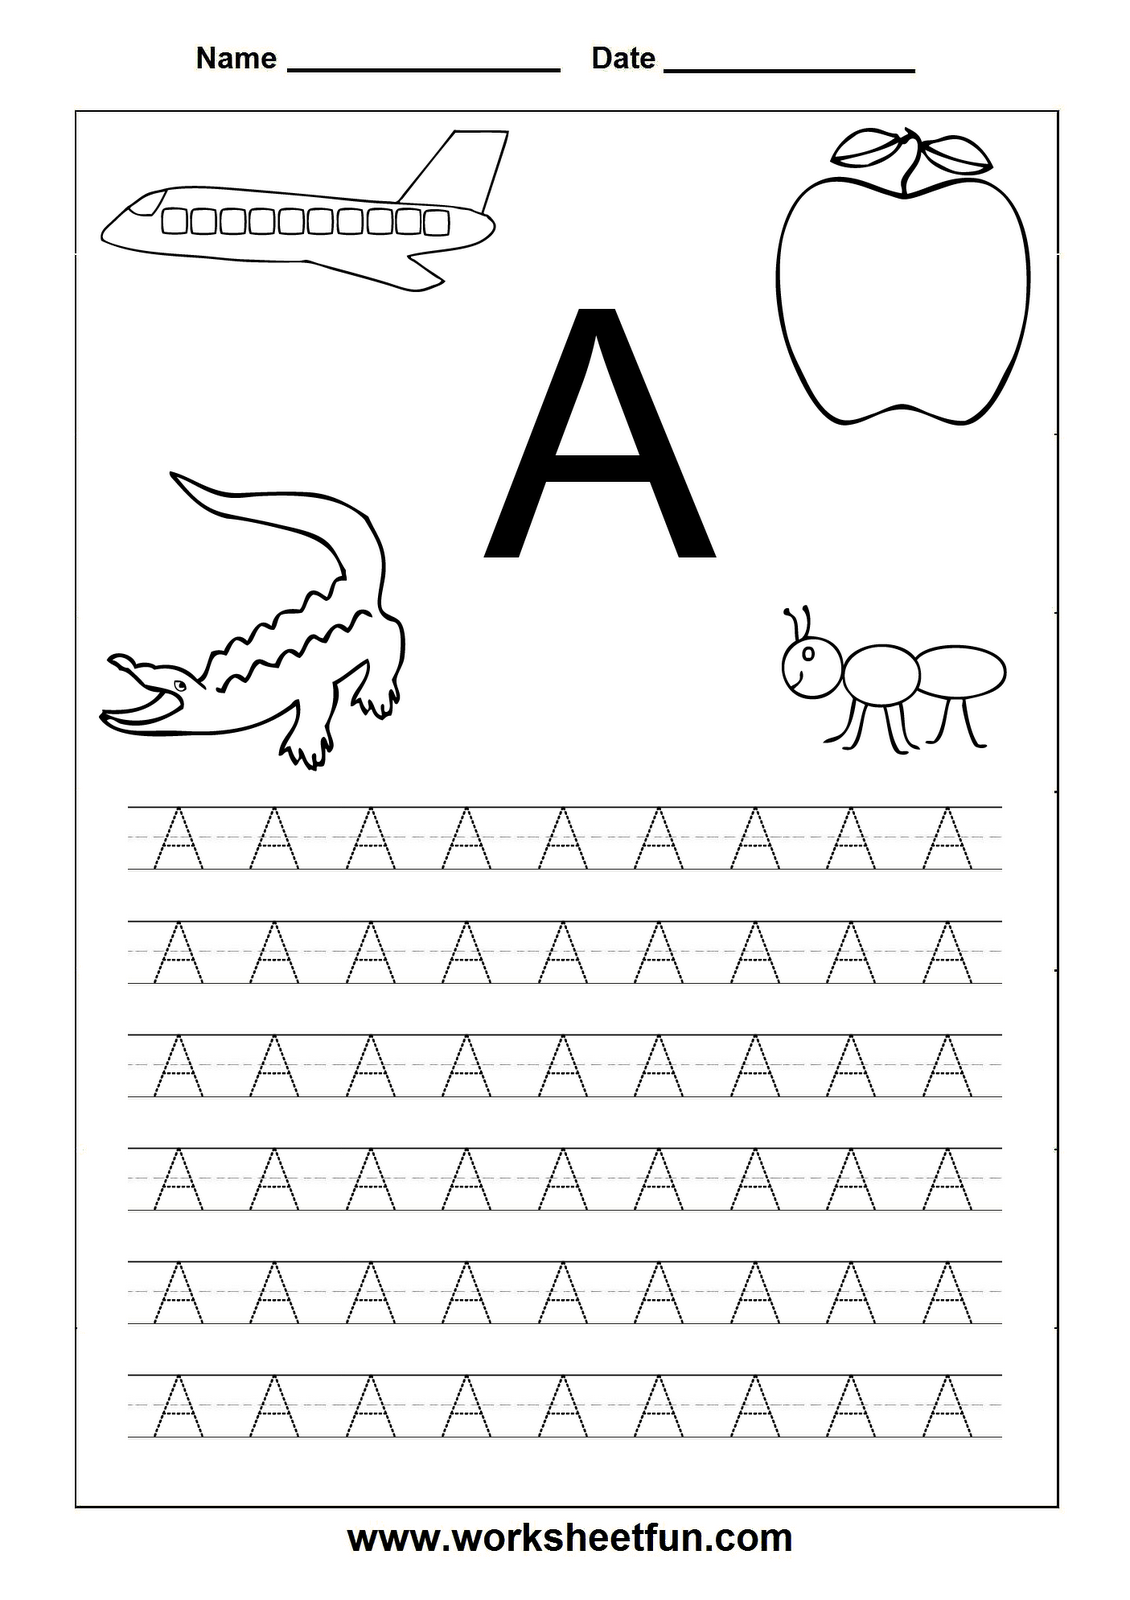 Worksheets Letter Handwriting Worksheets letter worksheets for kindergarten printable letters pinterest printable